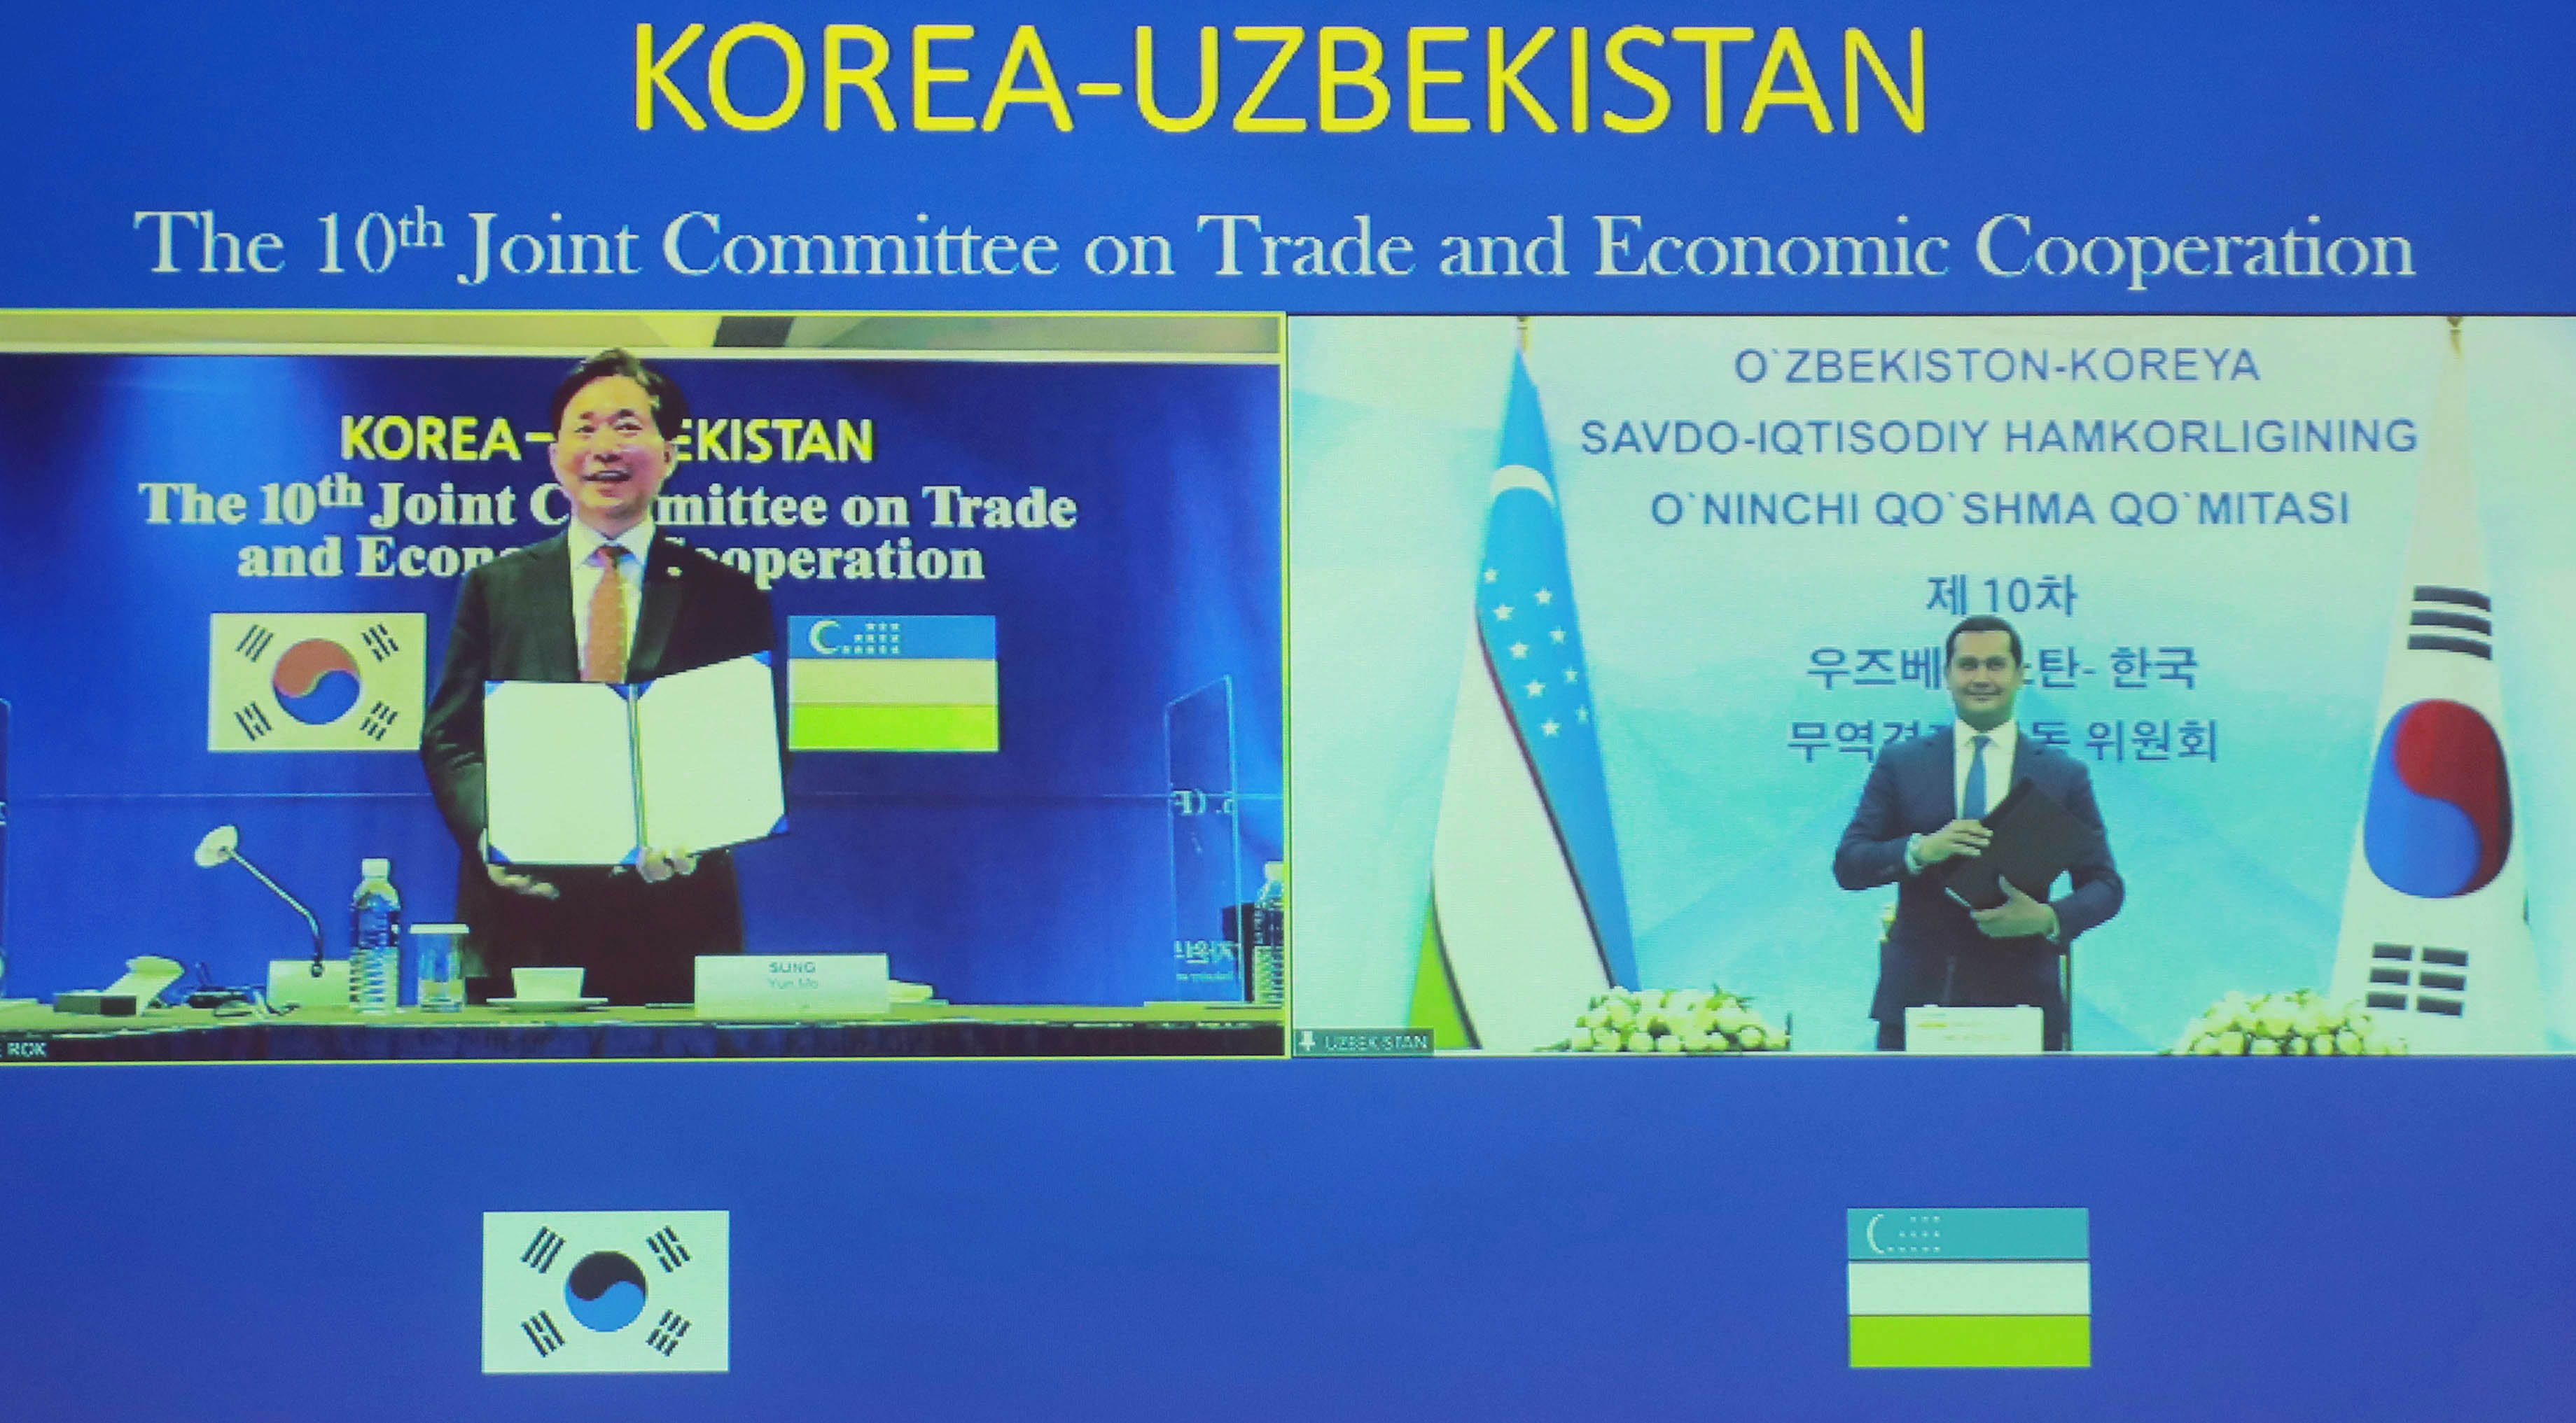 Minister Sung meets Uzbek counterpart at Joint Committee on Trade and Economic Cooperation